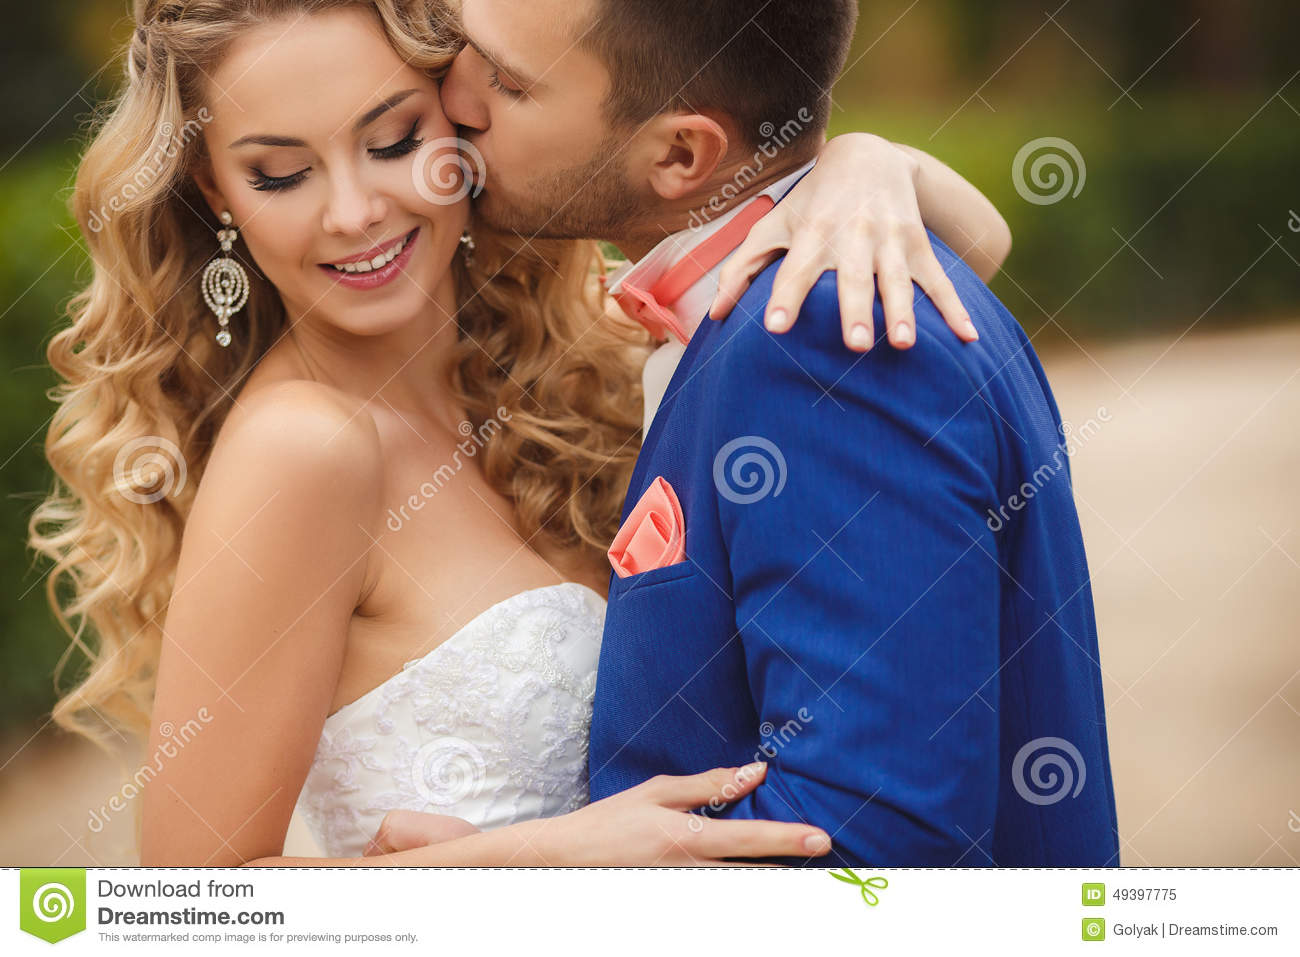 The Groom Kisses The Bride In A Green Park In The Summer Stock Photo